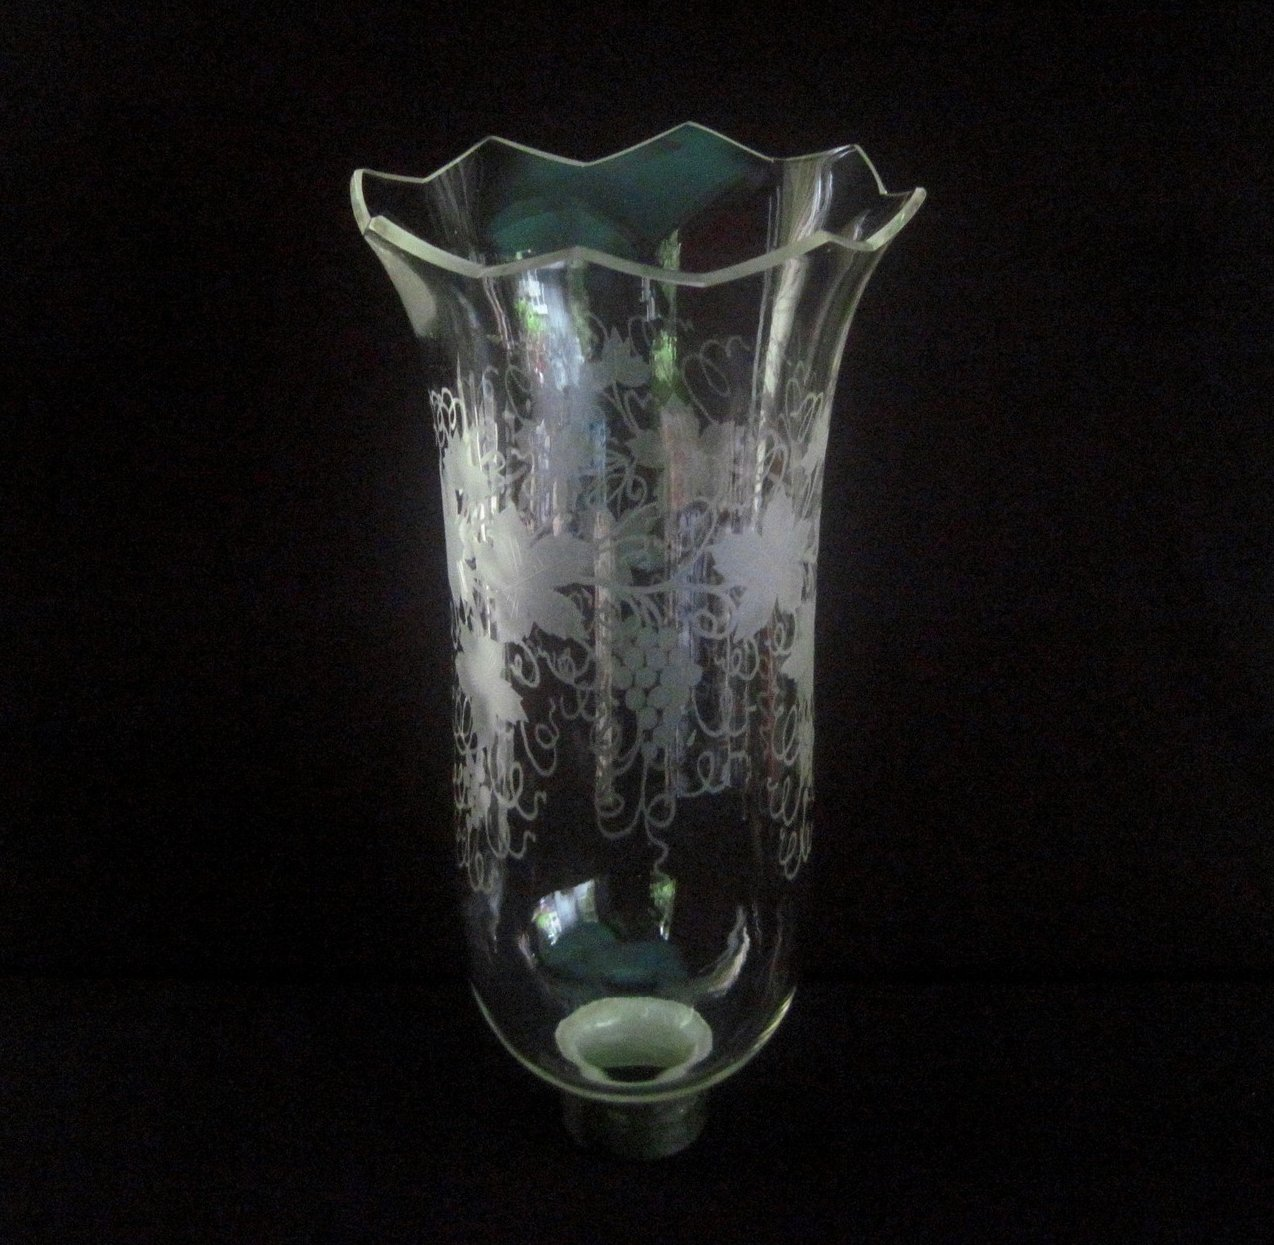 Image 0 of Glass Hurricane Shade 1.75 inch fitter x 11 h Grapevines XL Jagged